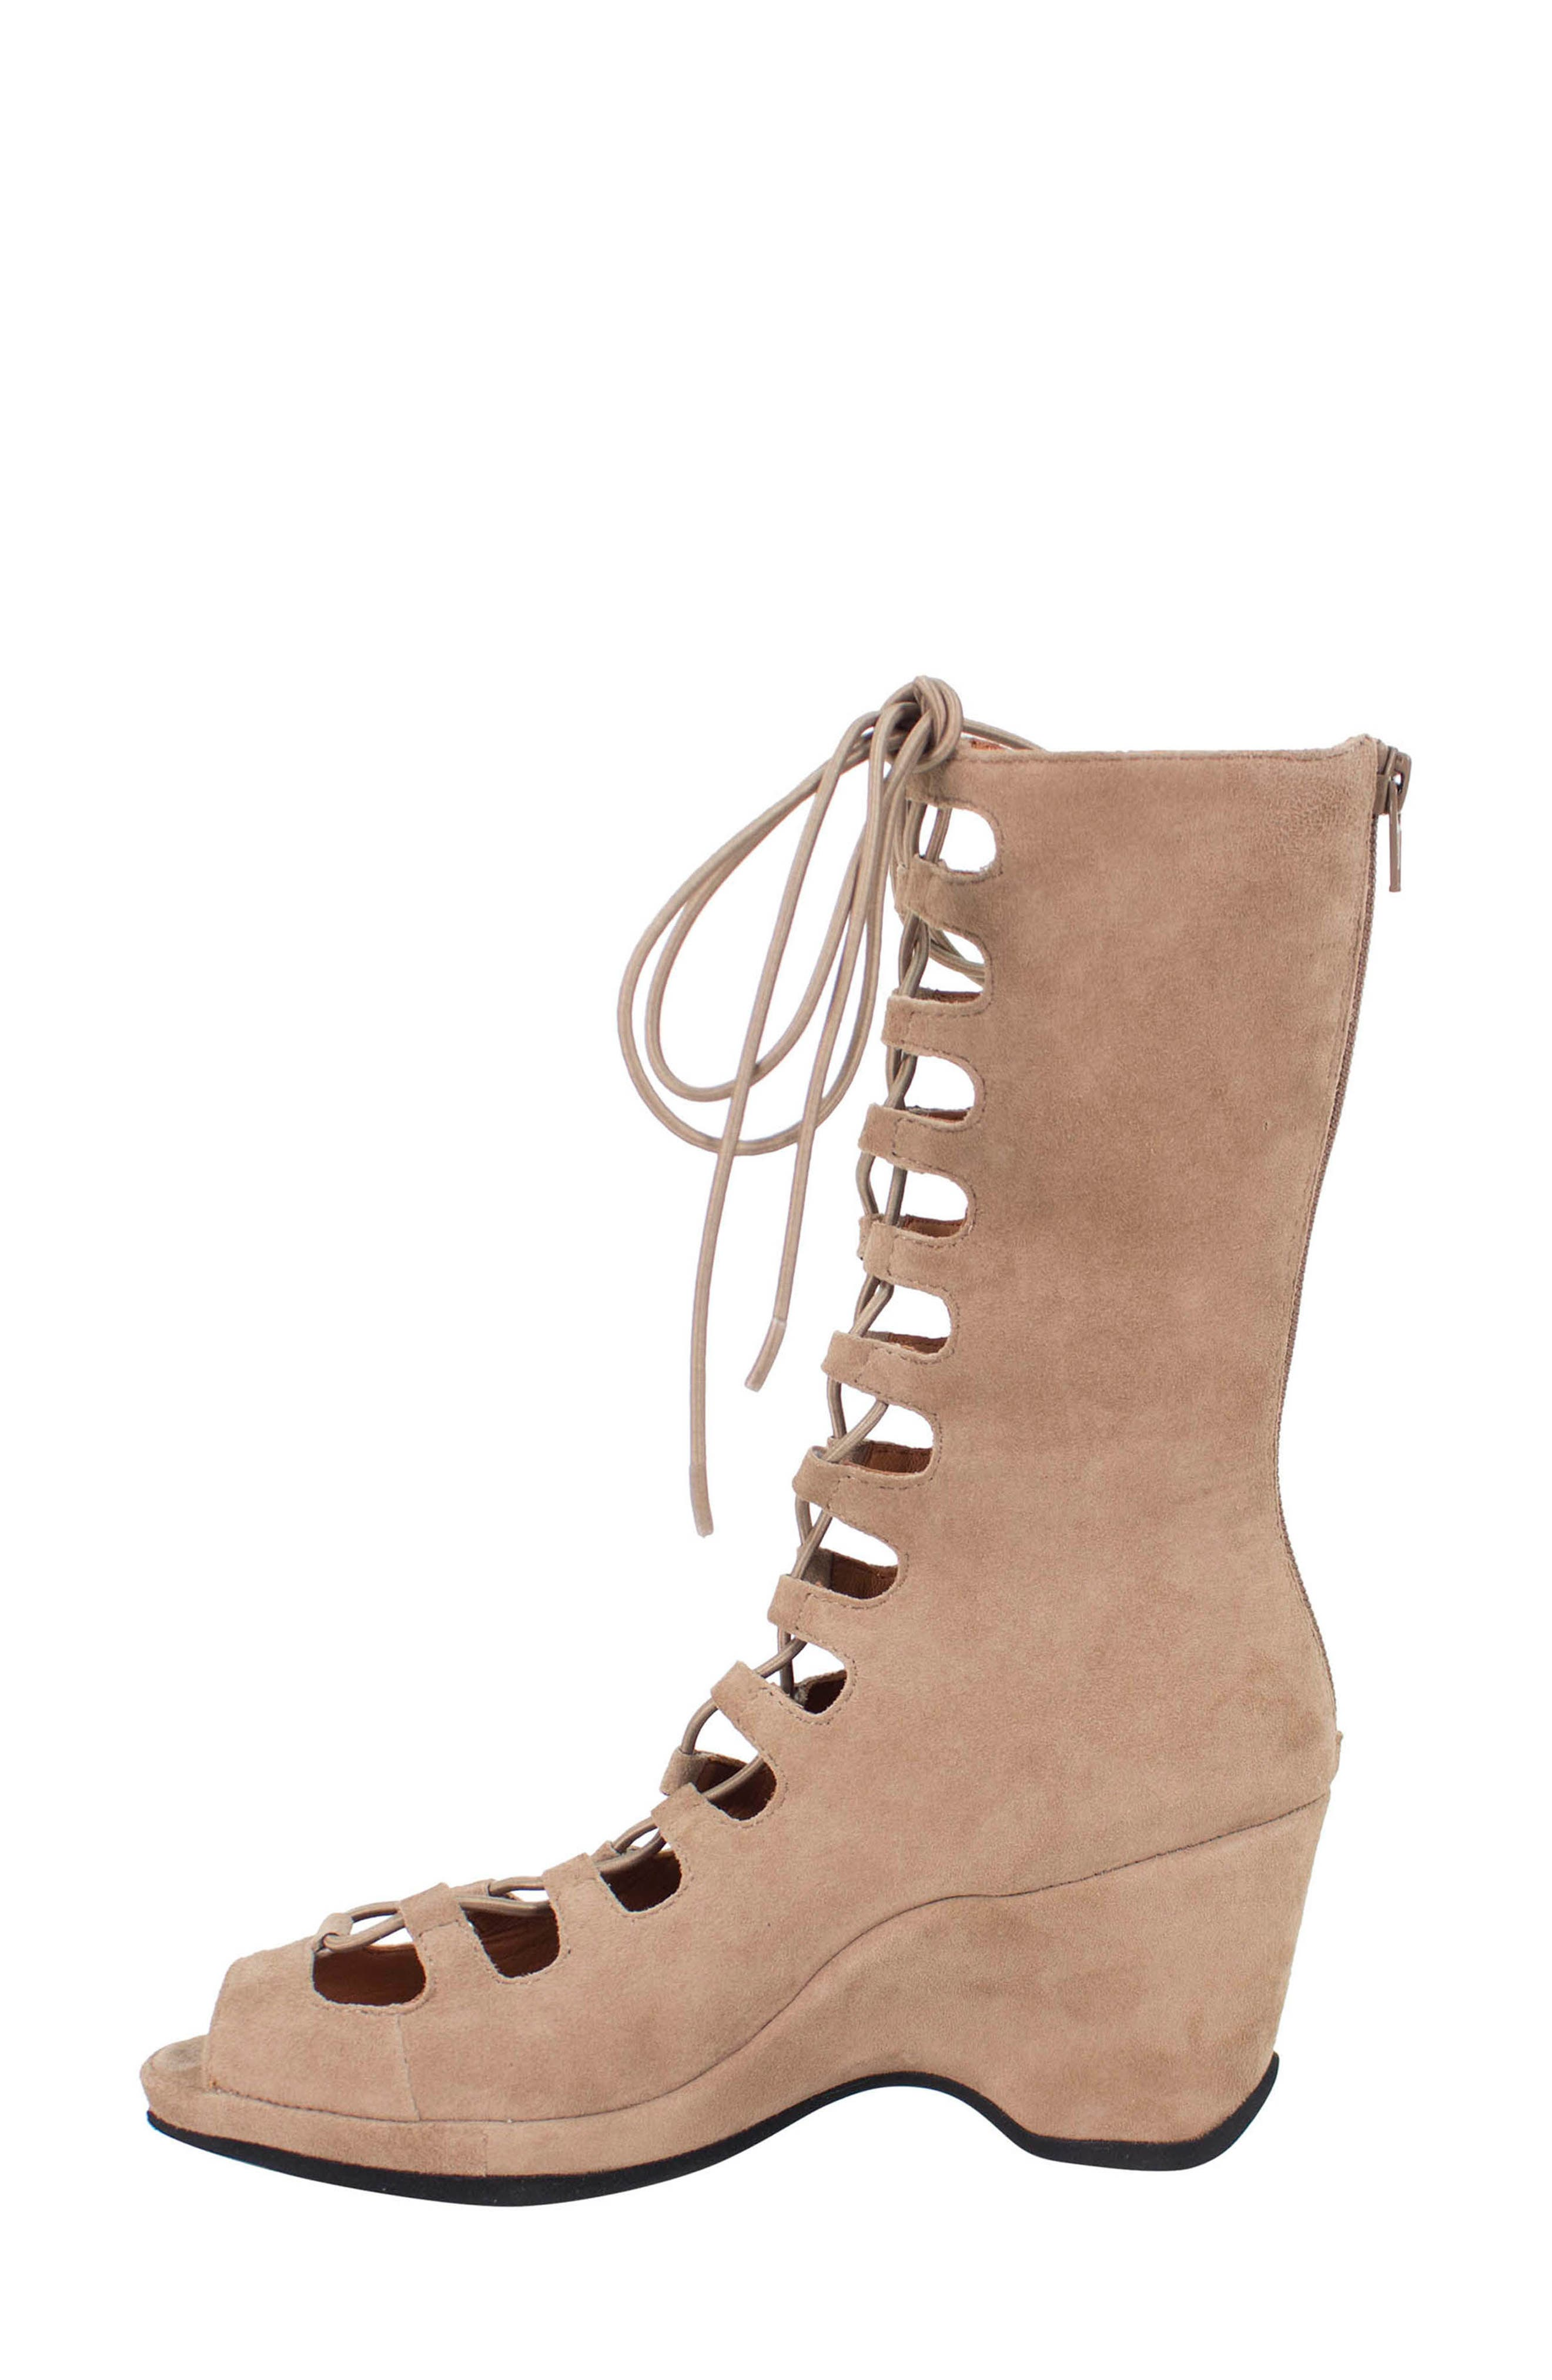 Othello Lace-Up Sandal,                             Alternate thumbnail 2, color,                             Taupe Suede